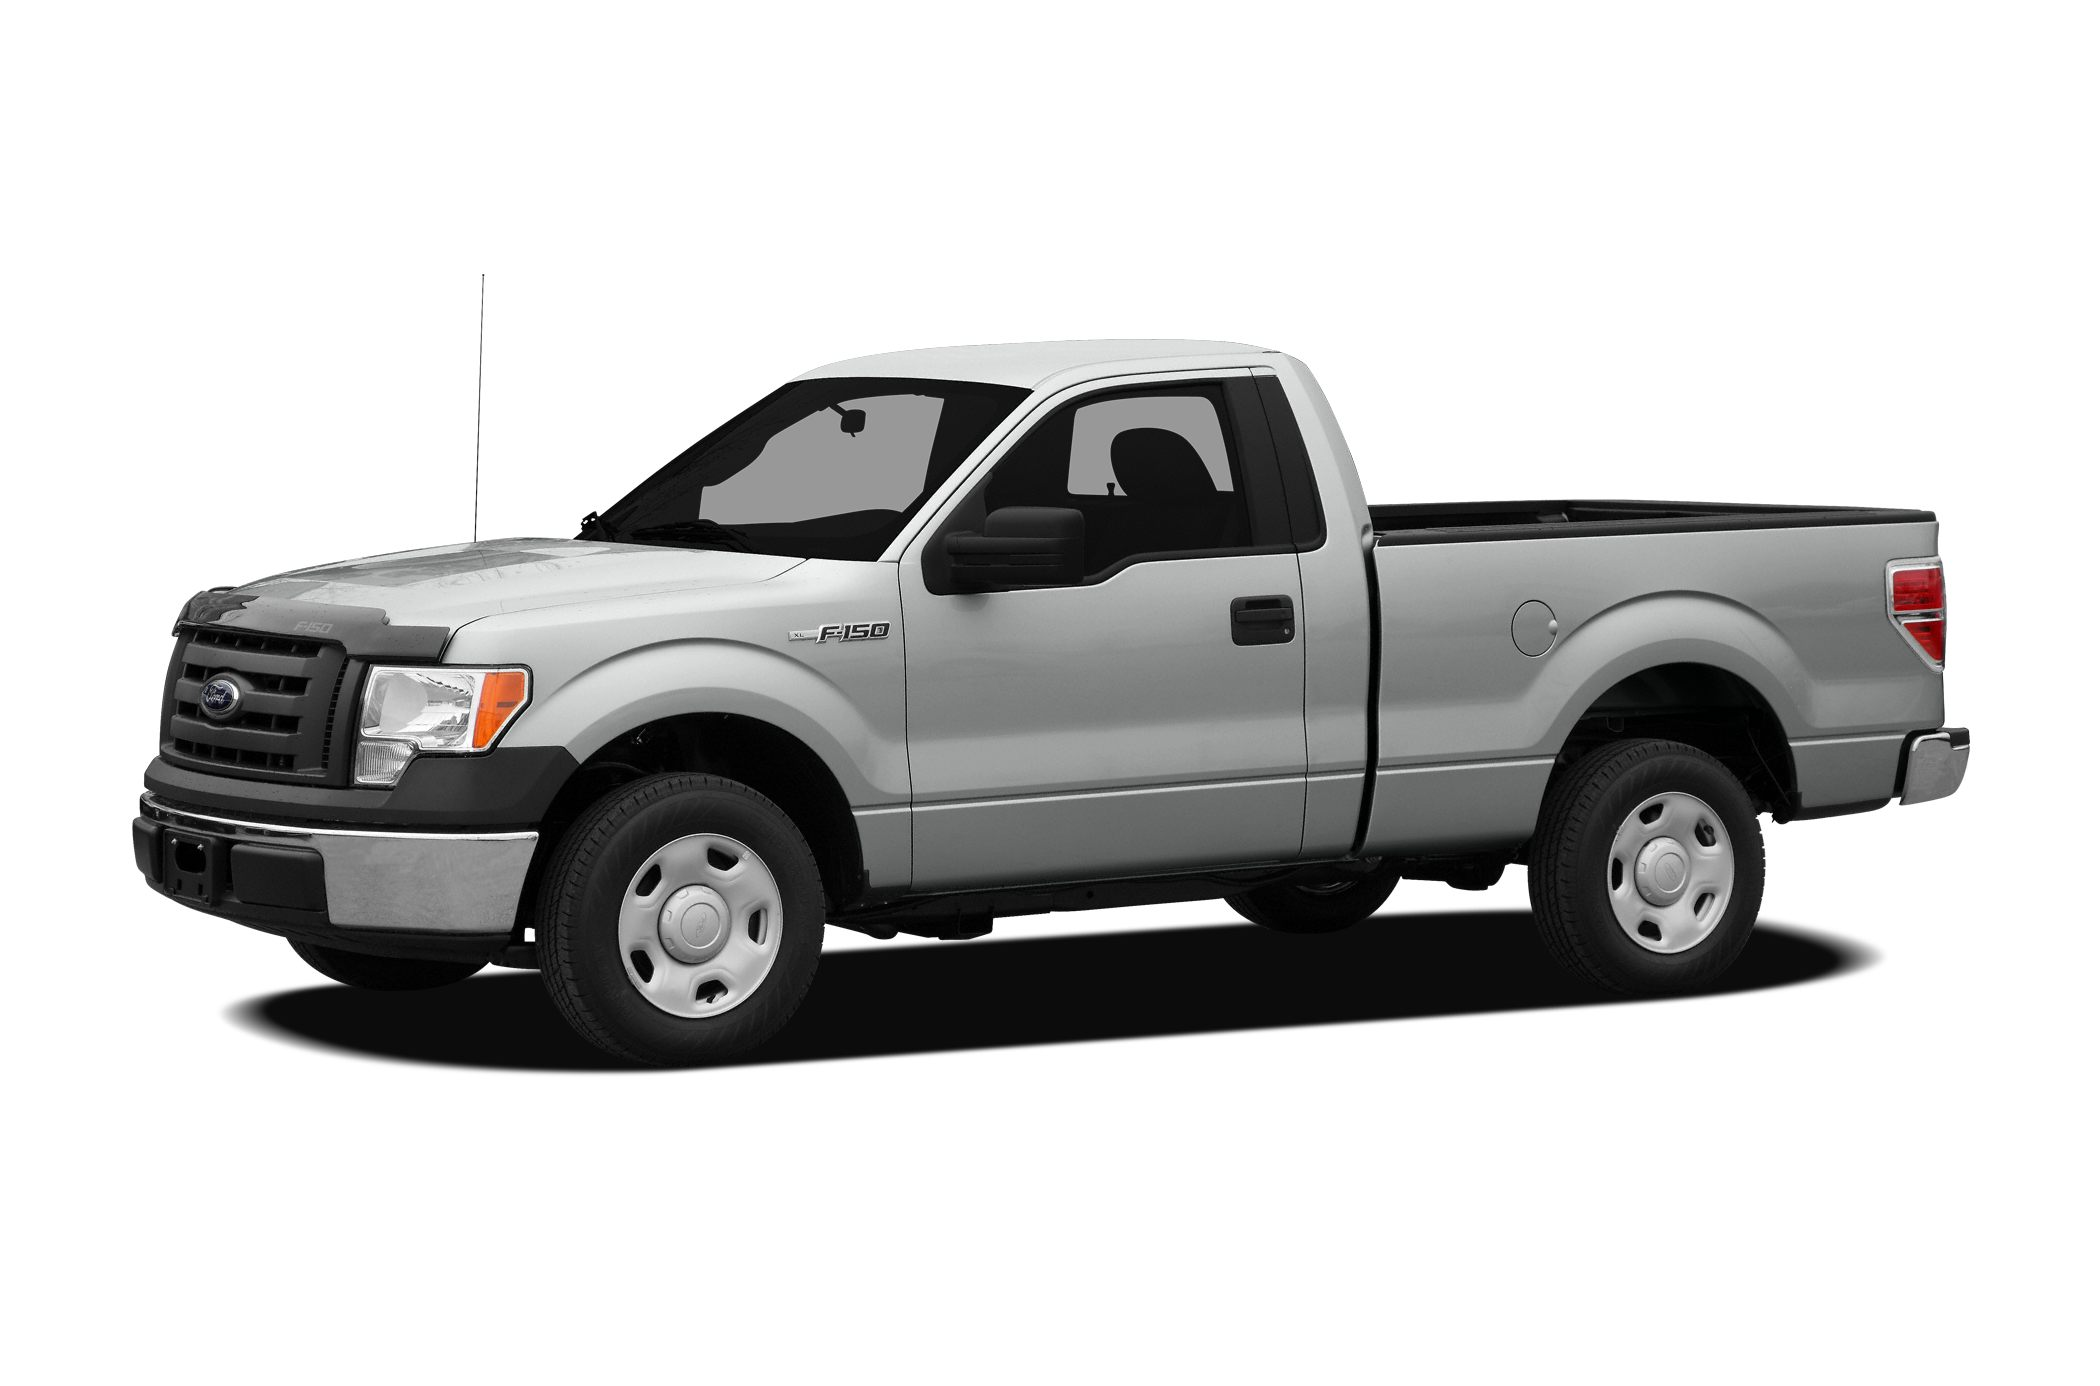 2009 Ford F150 XLT Crew Cab Pickup for sale in Mobile for $19,500 with 88,083 miles